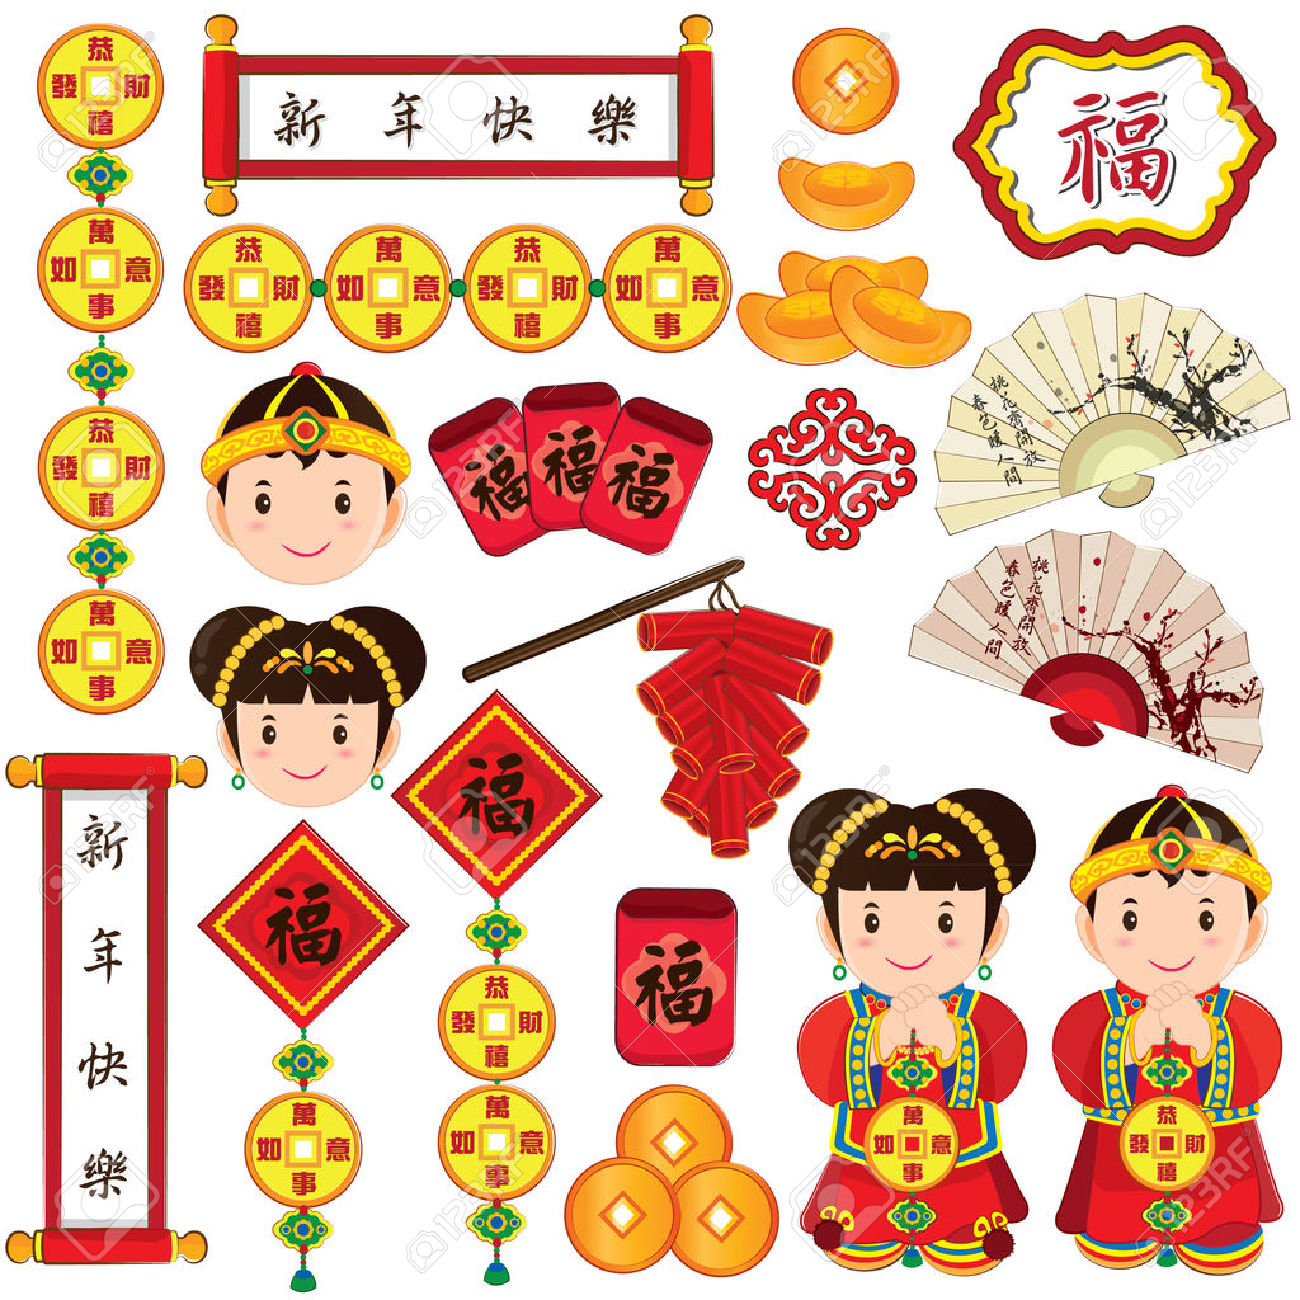 Chinese New Year Elements Clip Art Set Royalty Free Cliparts.